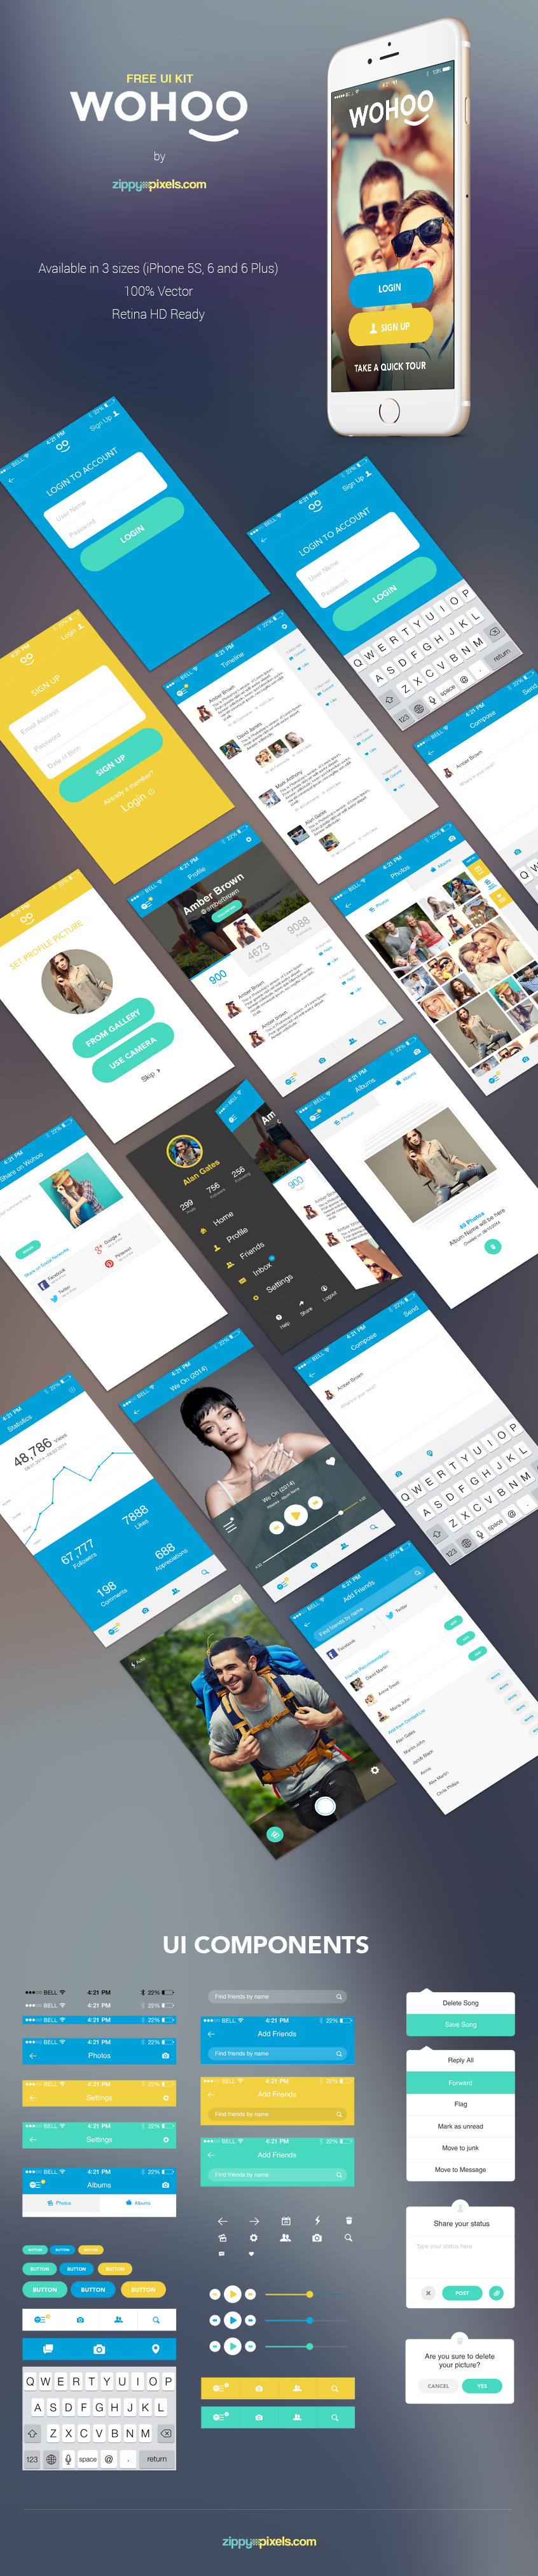 Wohoo Free Ui Kit for IOS8